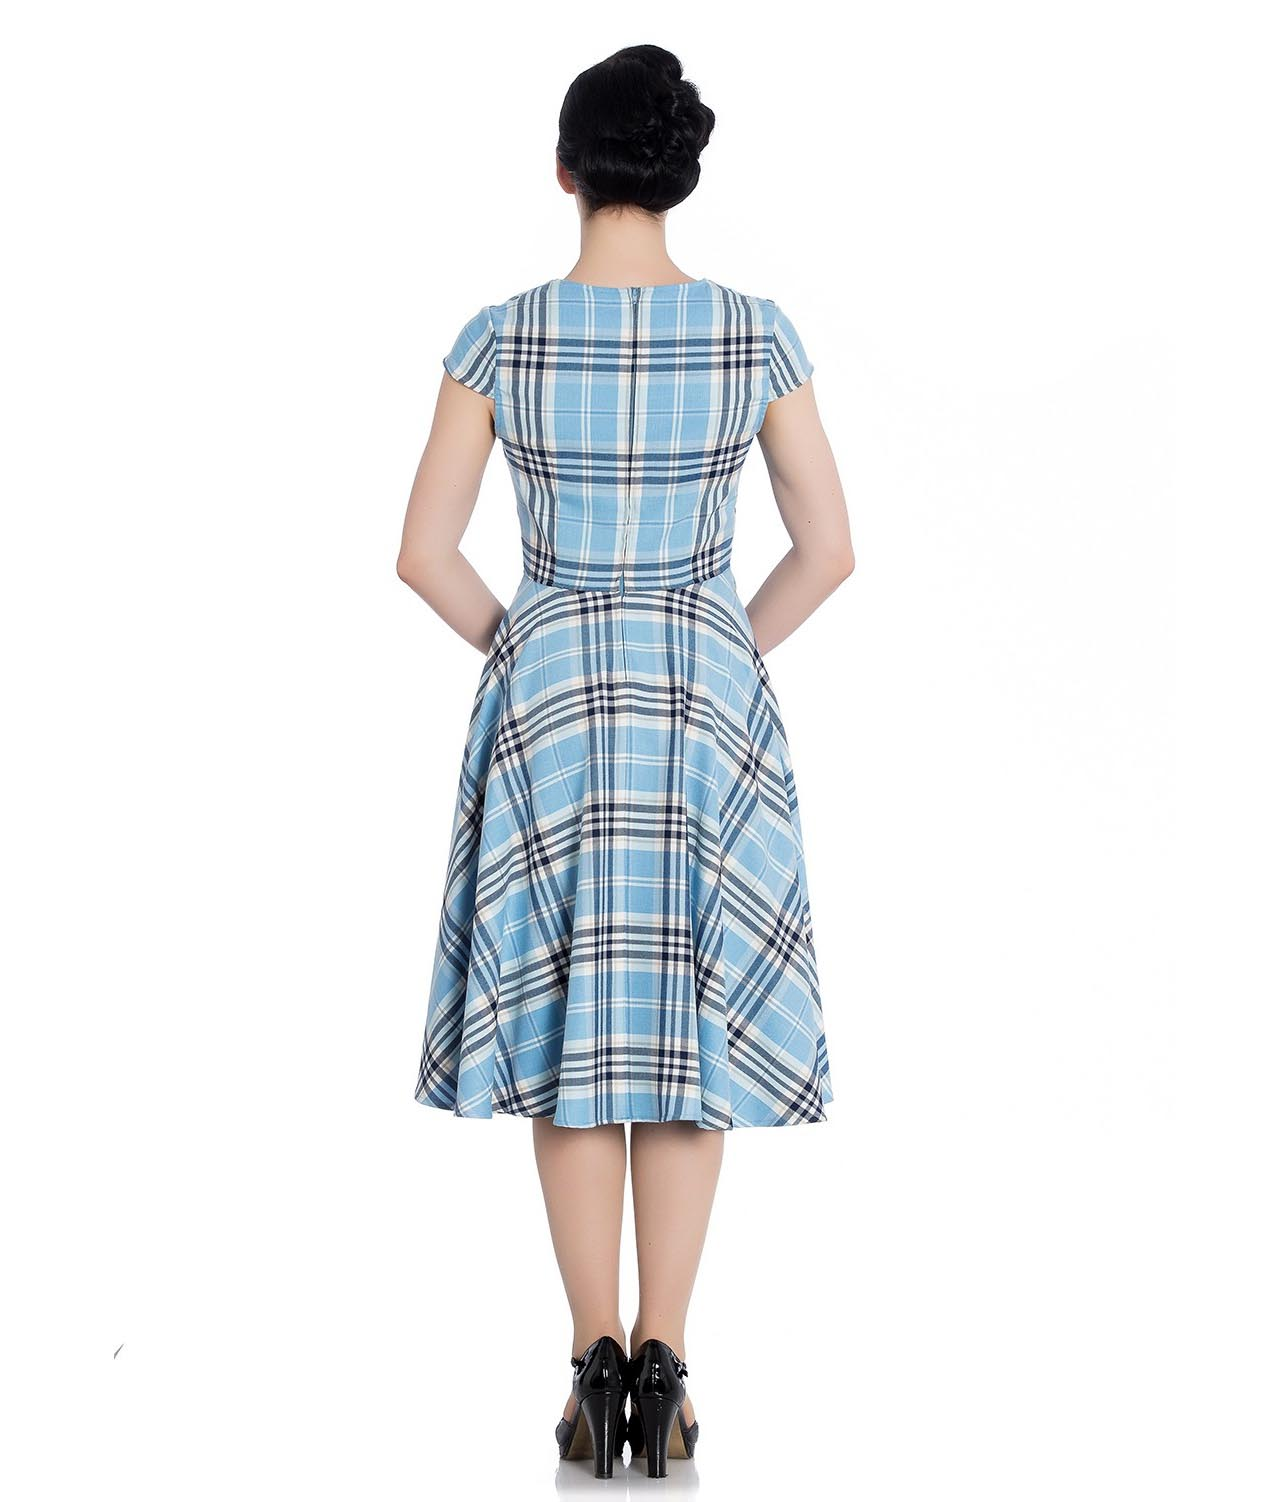 Hell-Bunny-Pinup-50s-Dress-ABERDEEN-Hogmony-Sky-Blue-amp-White-Tartan-All-Sizes thumbnail 9